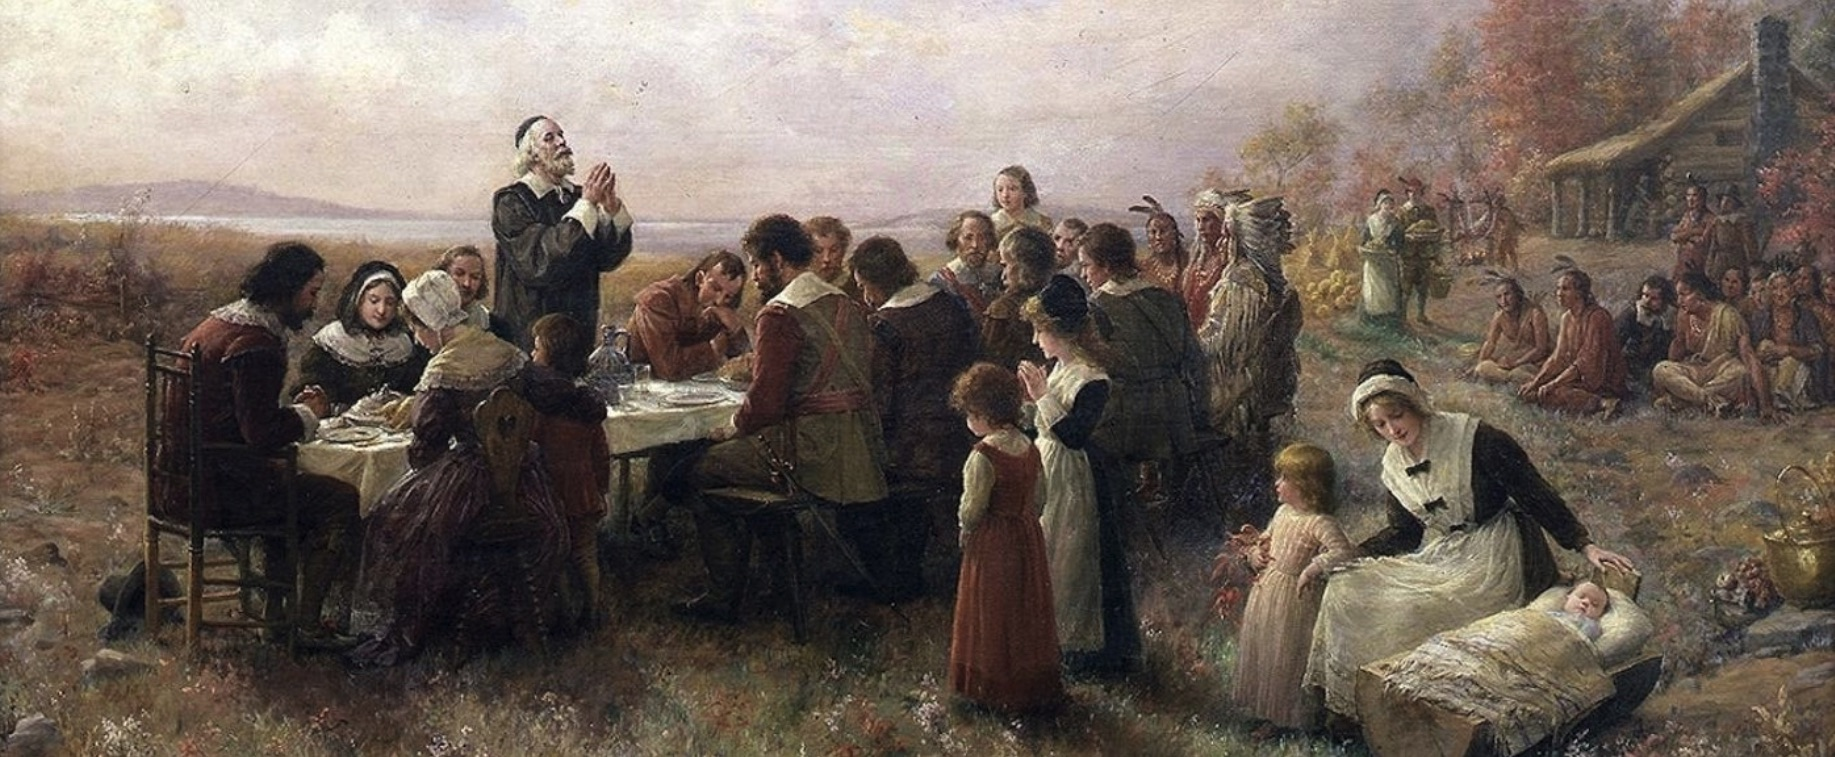 'First Thanksgiving at Plymouth', journal of wild culture